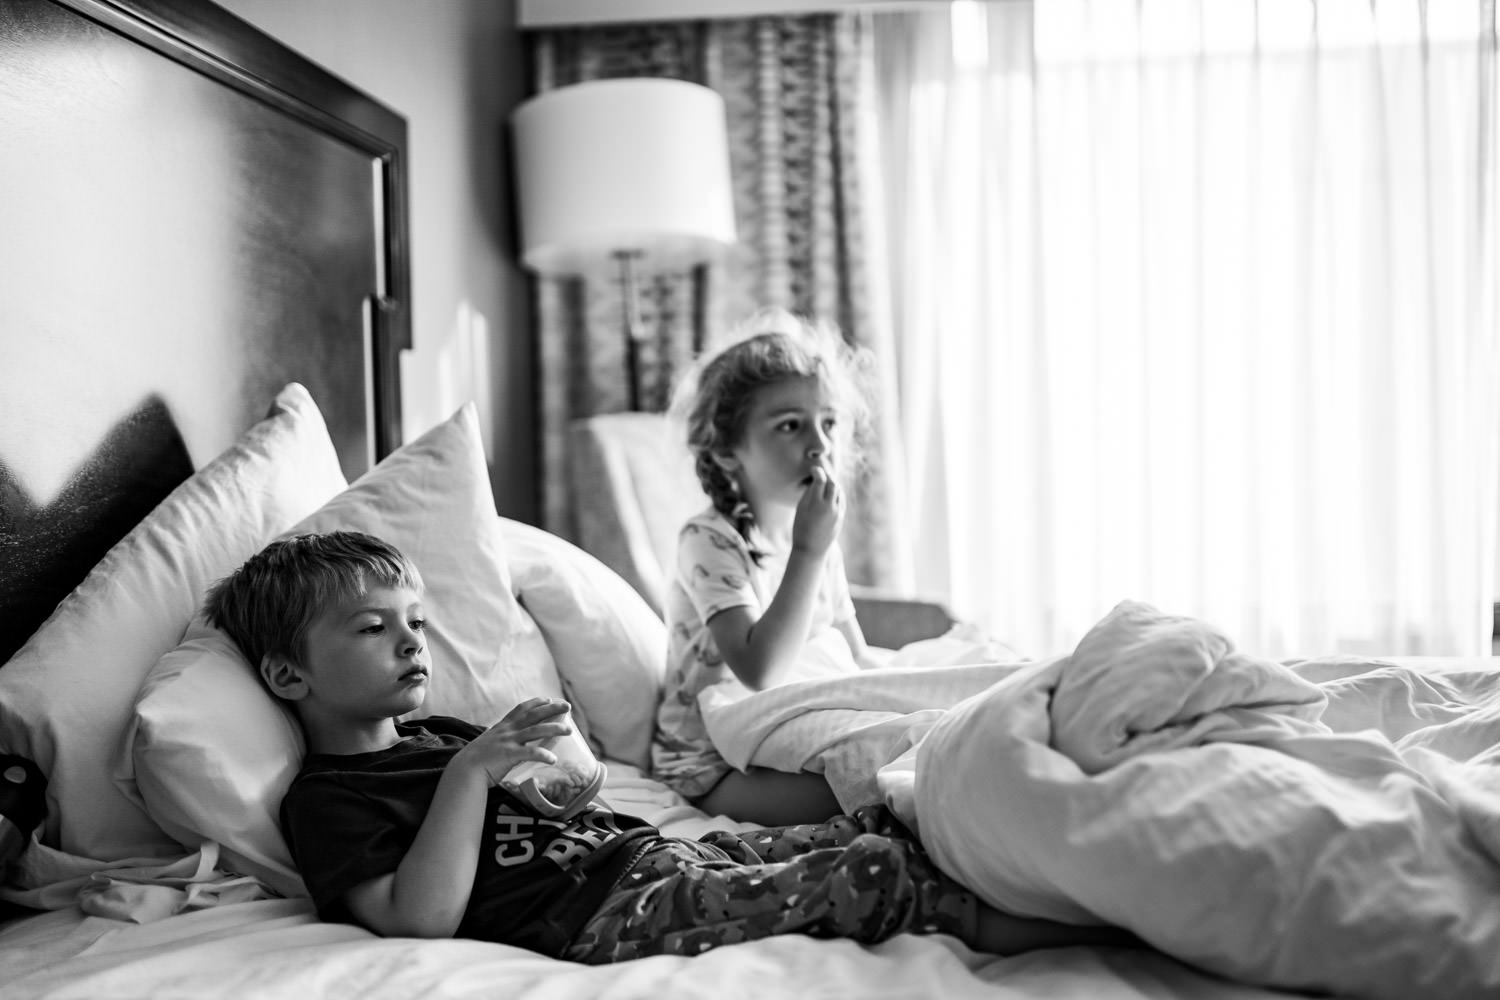 Two kids watch tv and eat breakfast in a hotel bed.